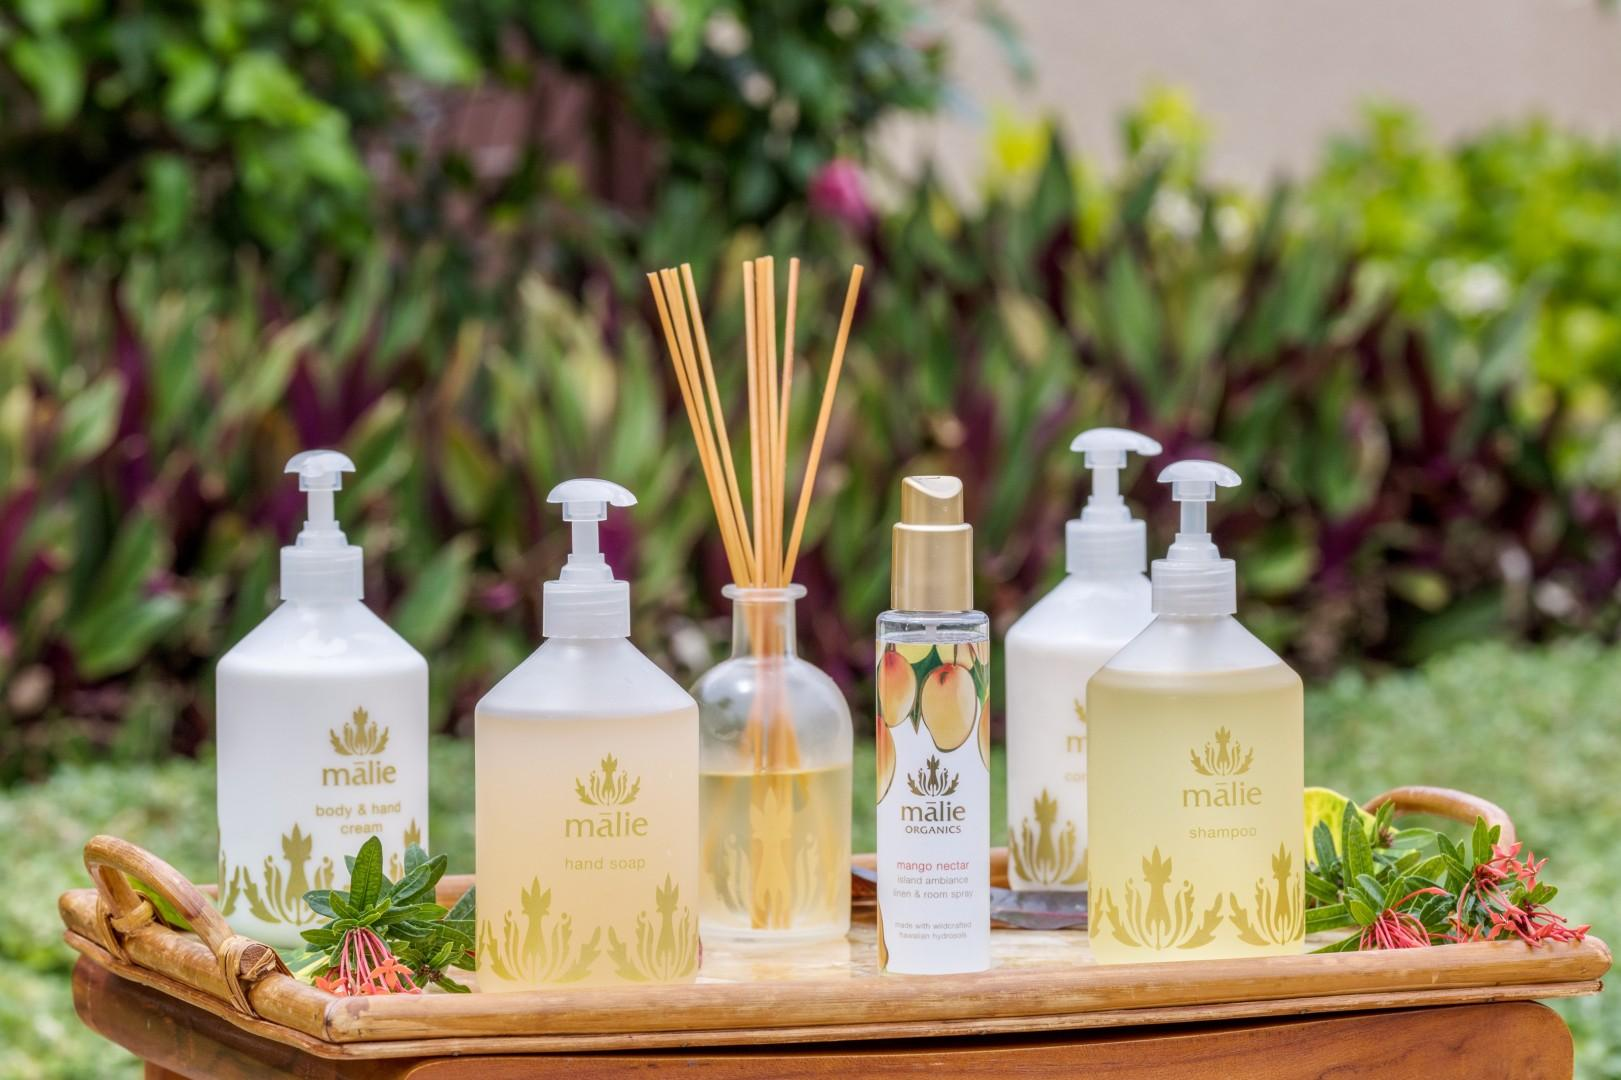 Locally Made, All Natural, Malie Amenities Add Even More Heavenly Scents to Your Stay!